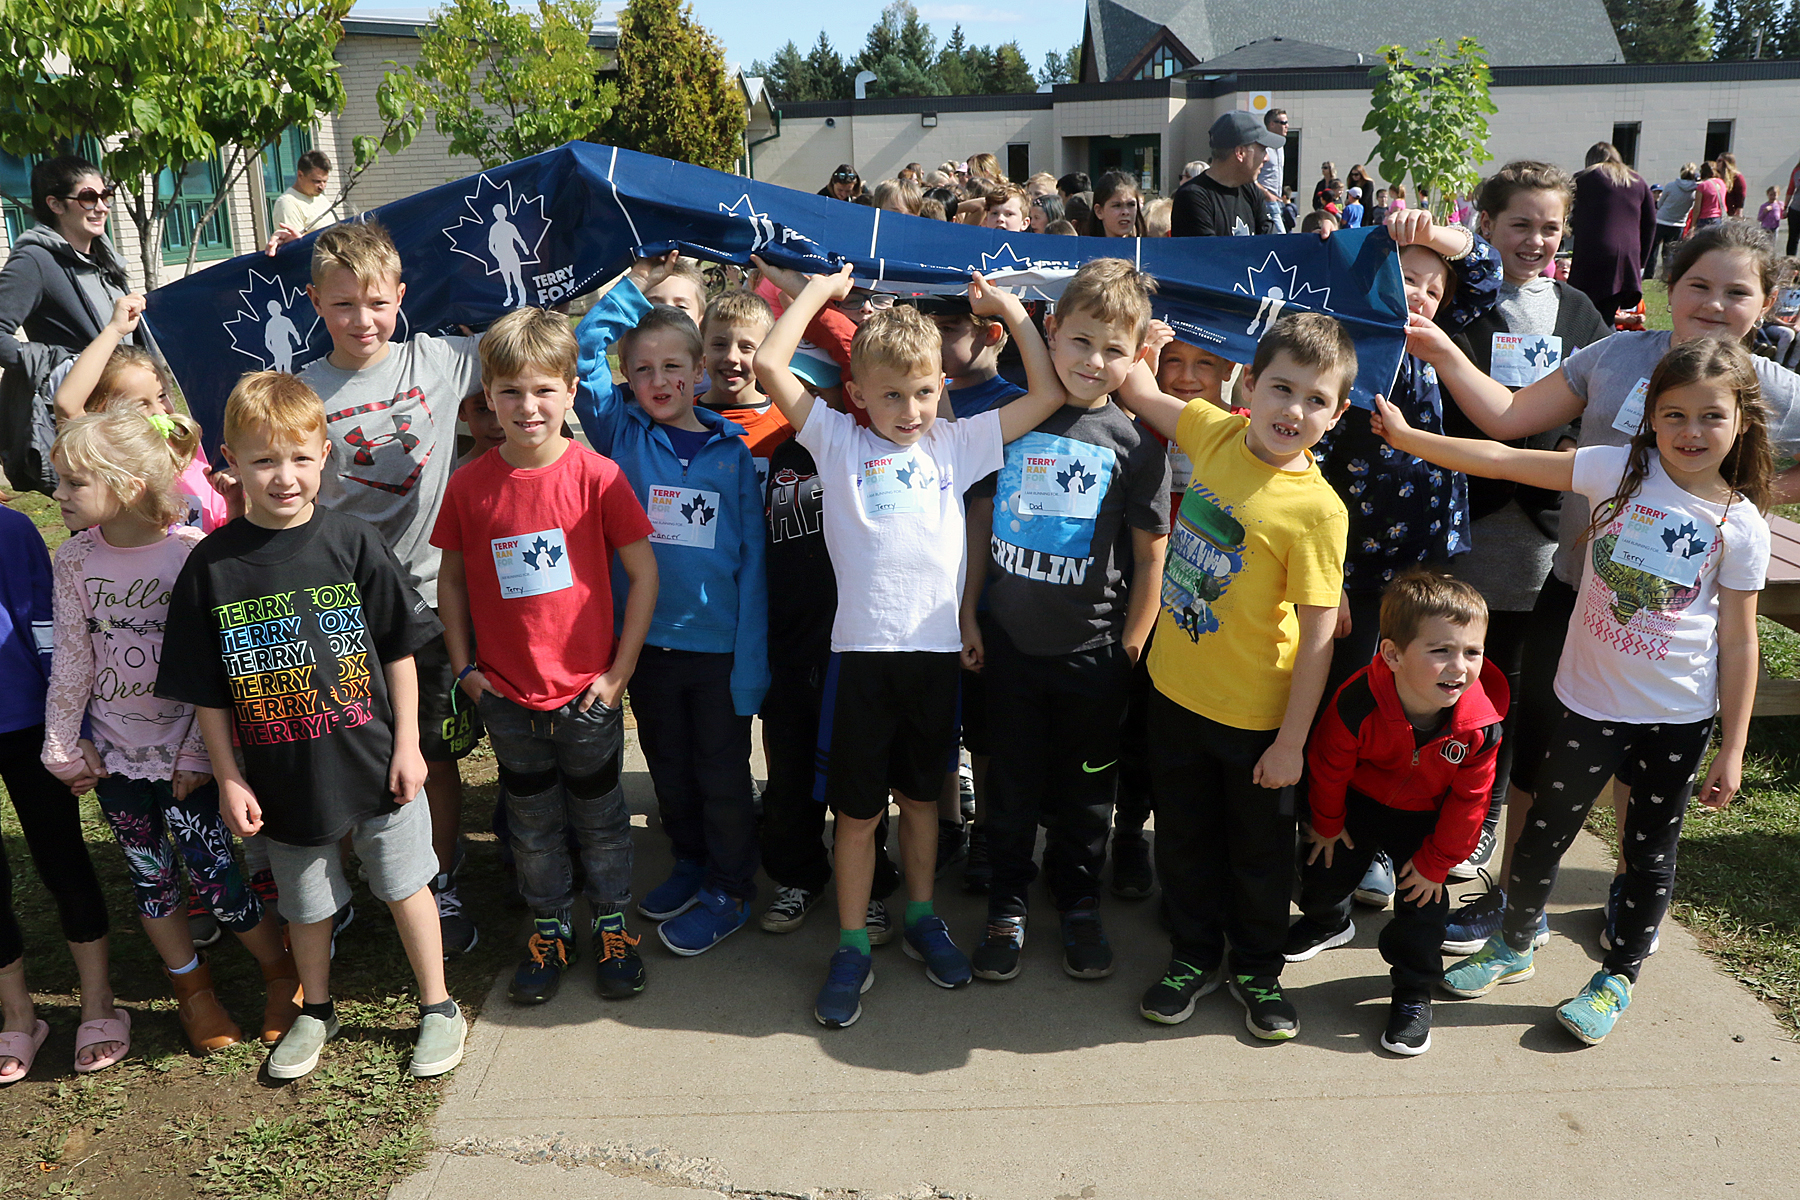 Holy Family carries on Terry Fox's legacy